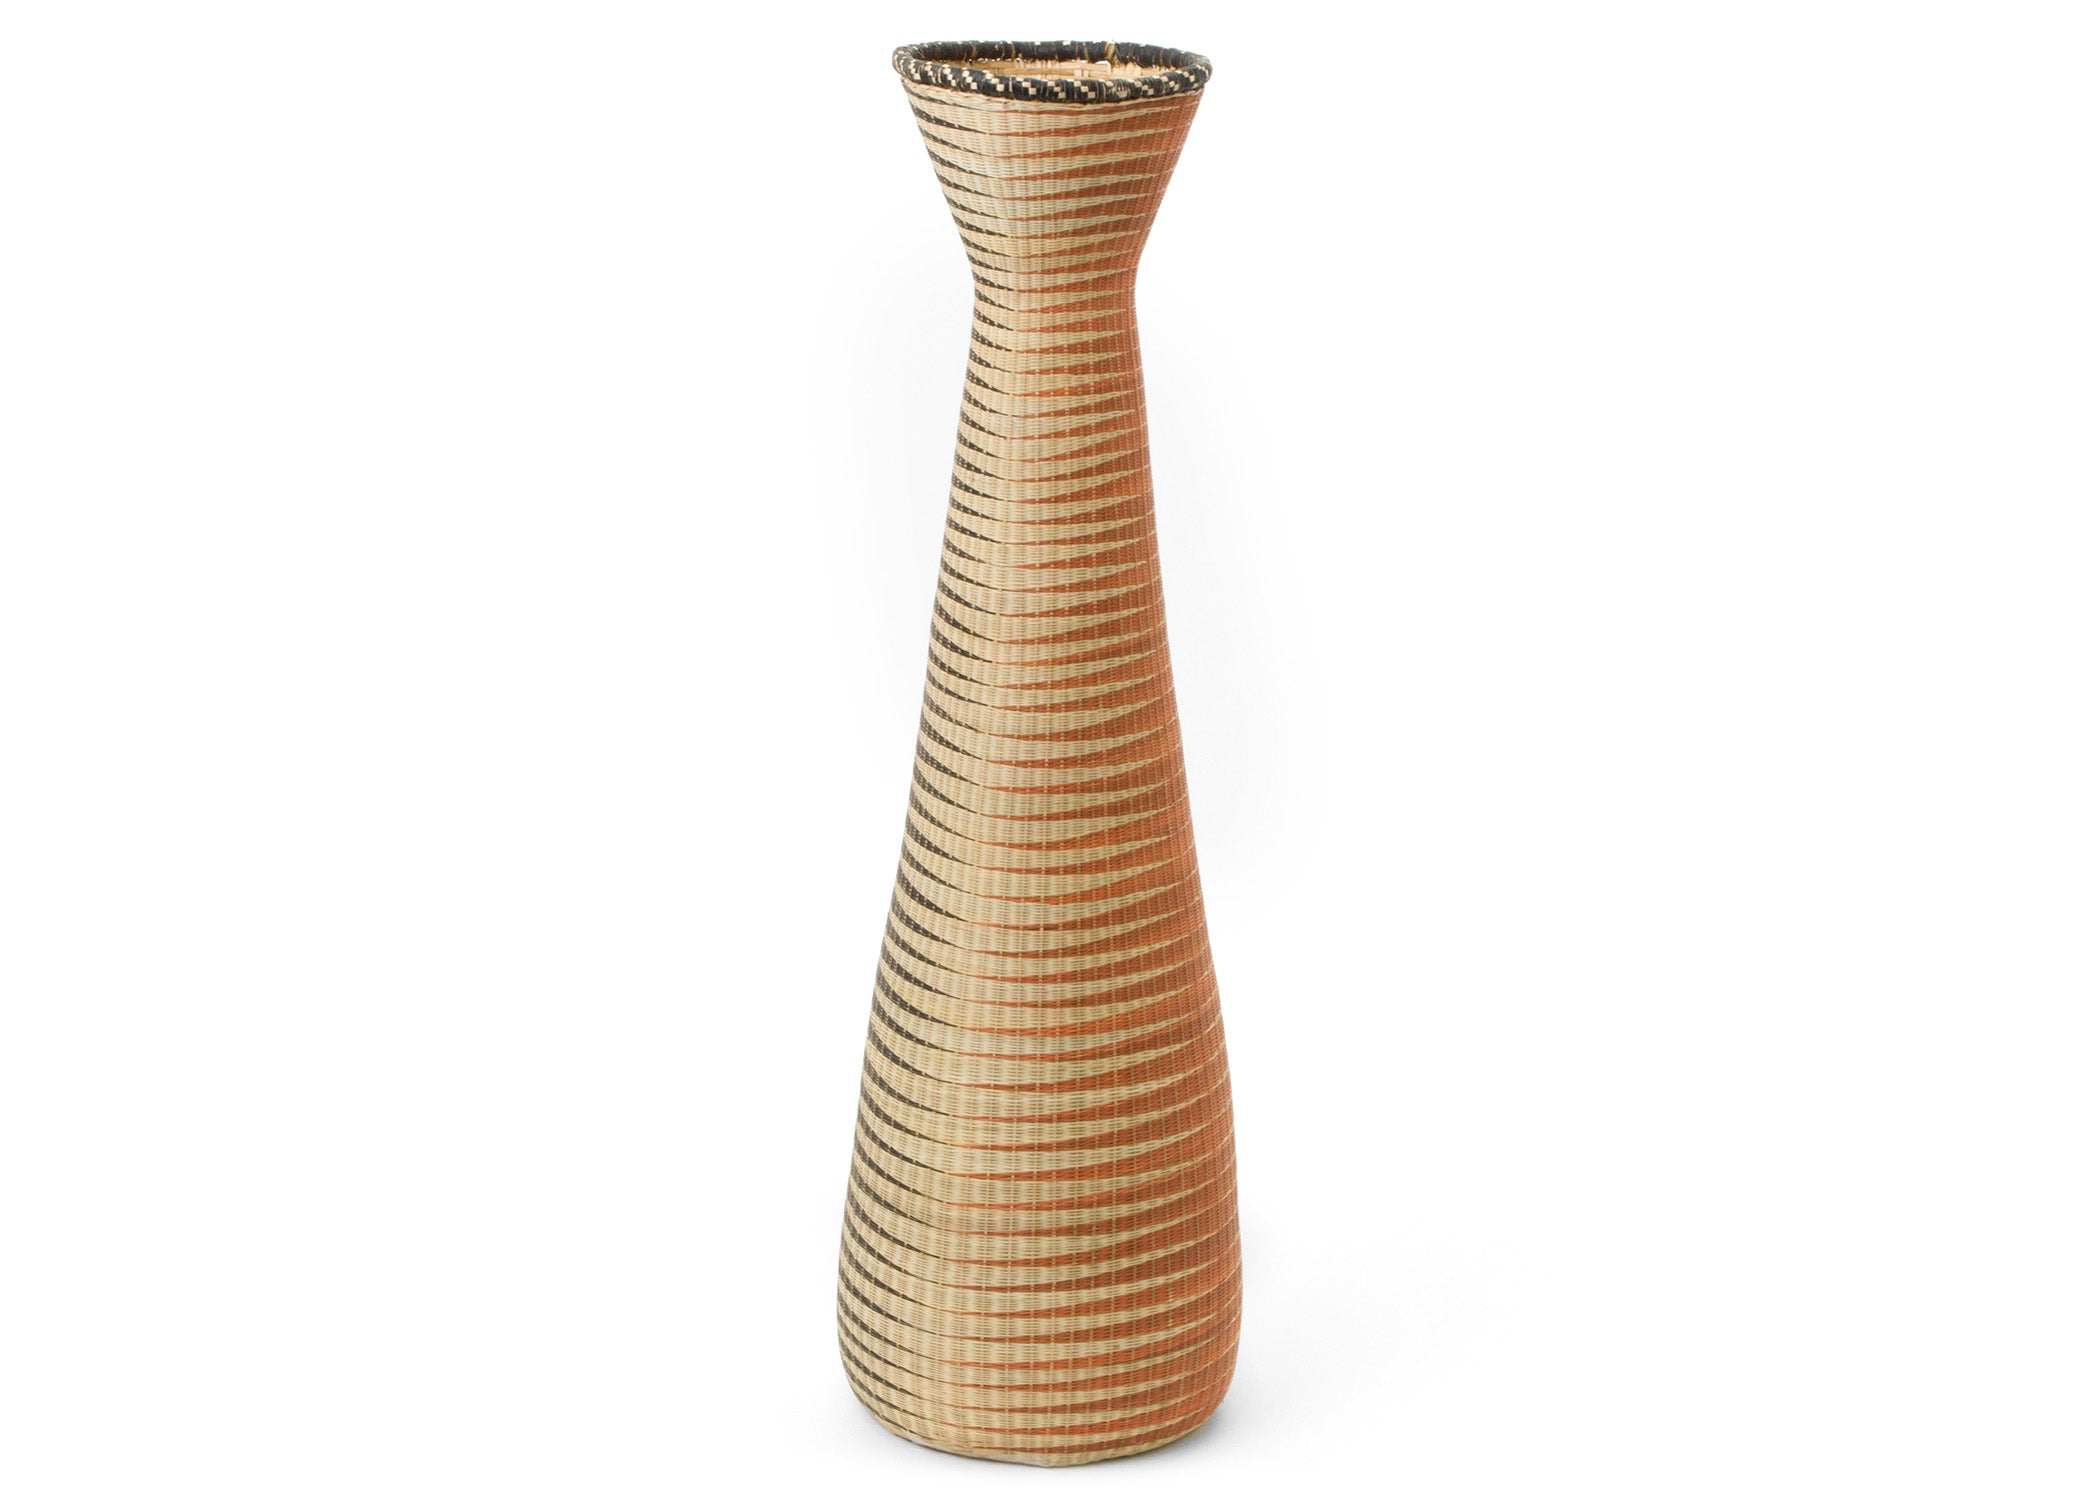 Huye Tall Floor Vase II - KAZI - Artisan made high quality home decor and wall art